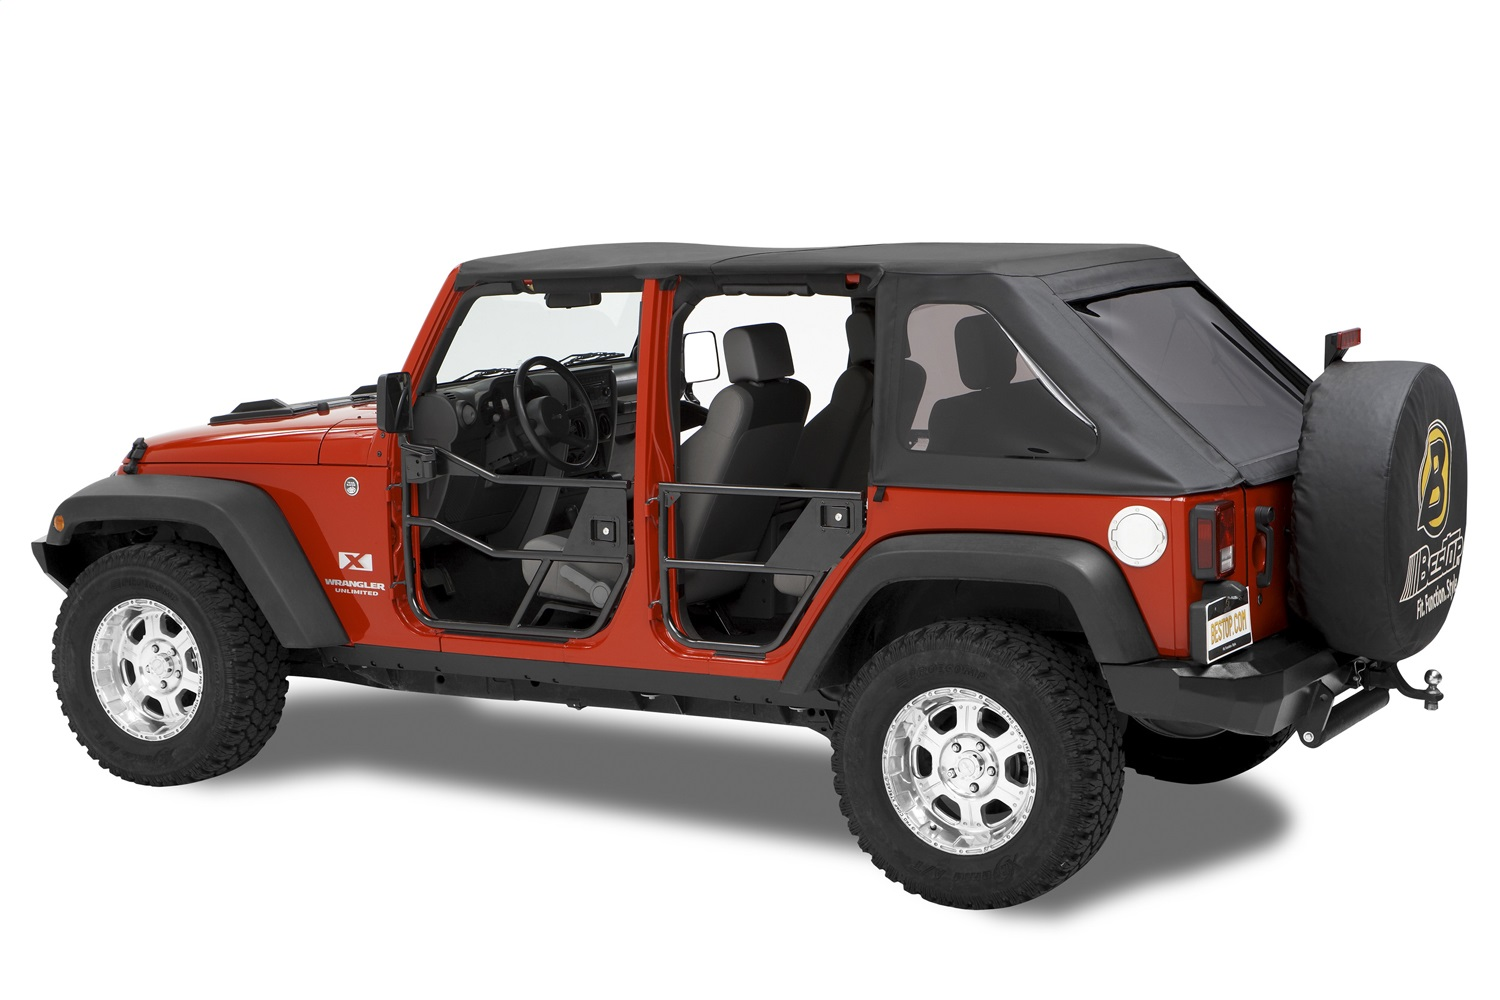 HighRock 4x4T Element Soft Doors, Black, Front, Incl. Two Lower Door Frames, Paddle Handles, w/o Storage Bags